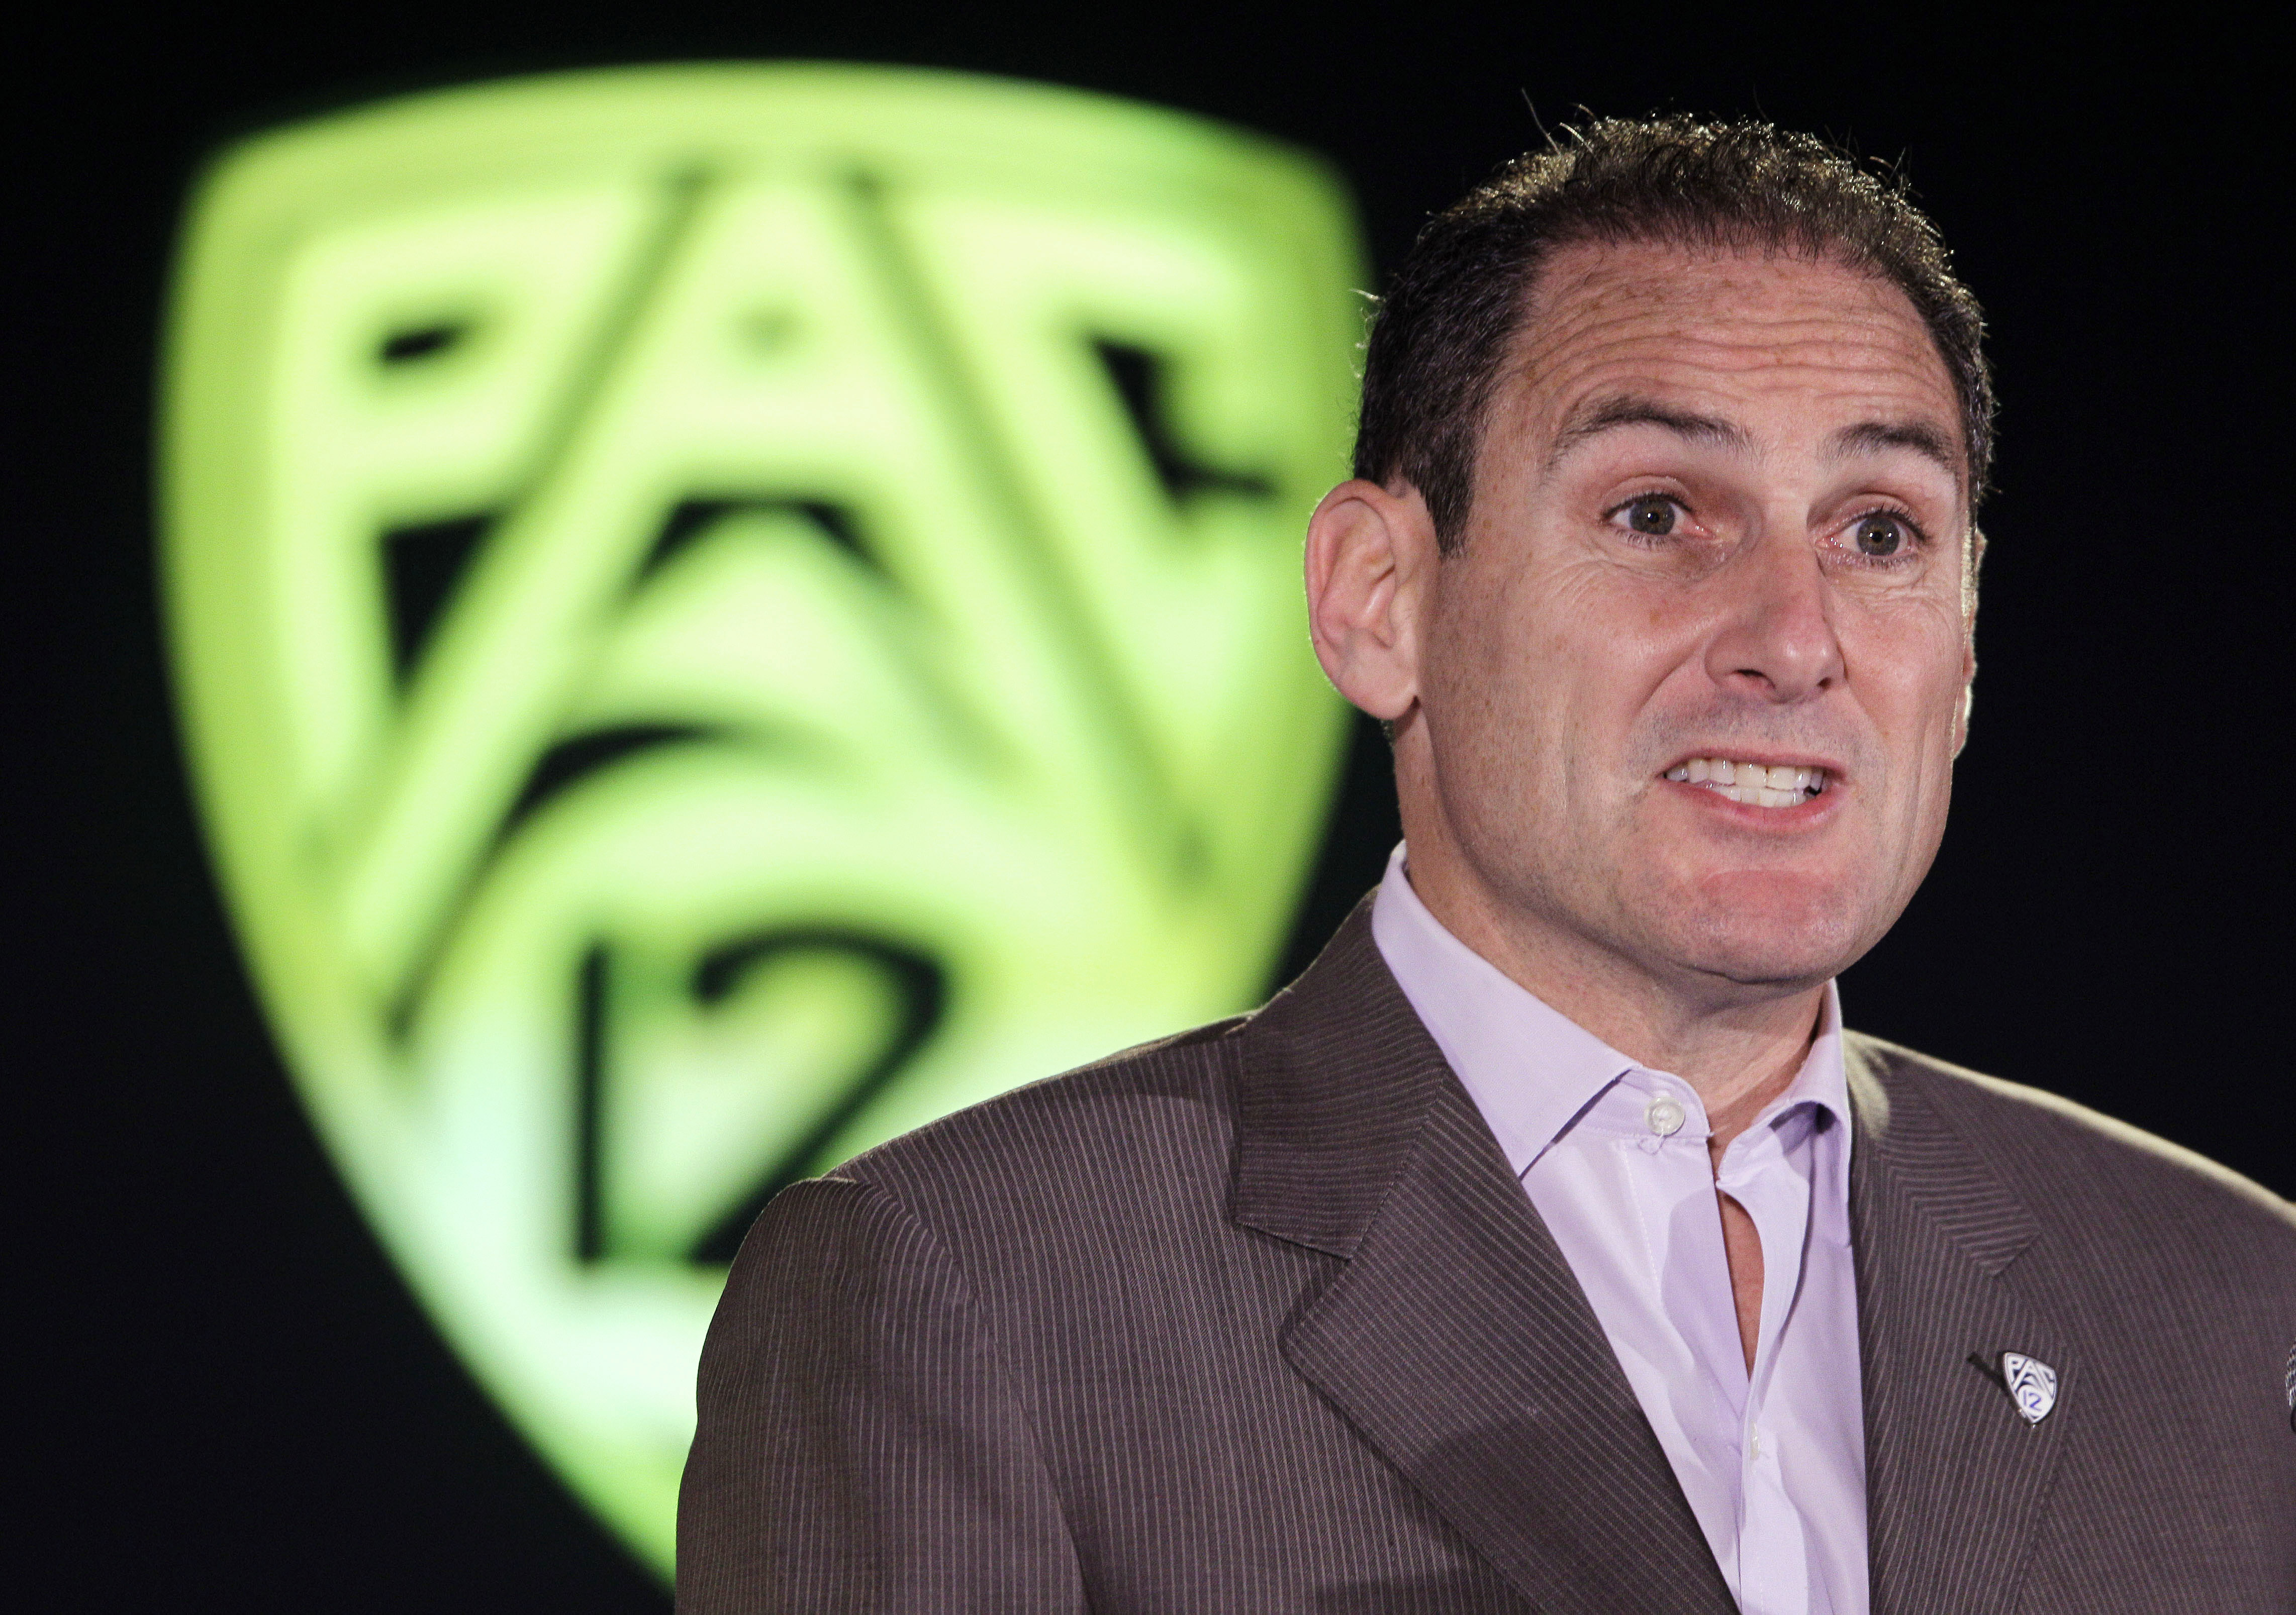 """FILE - In this Nov. 1, 2012, file photo, Pac-12 Commissioner Larry Scott speaks during the PAC-12 college basketball media day in San Francisco. Scott says the kind of NCAA reform sought by the most powerful conferences is not an """"us vs. them situation."""""""